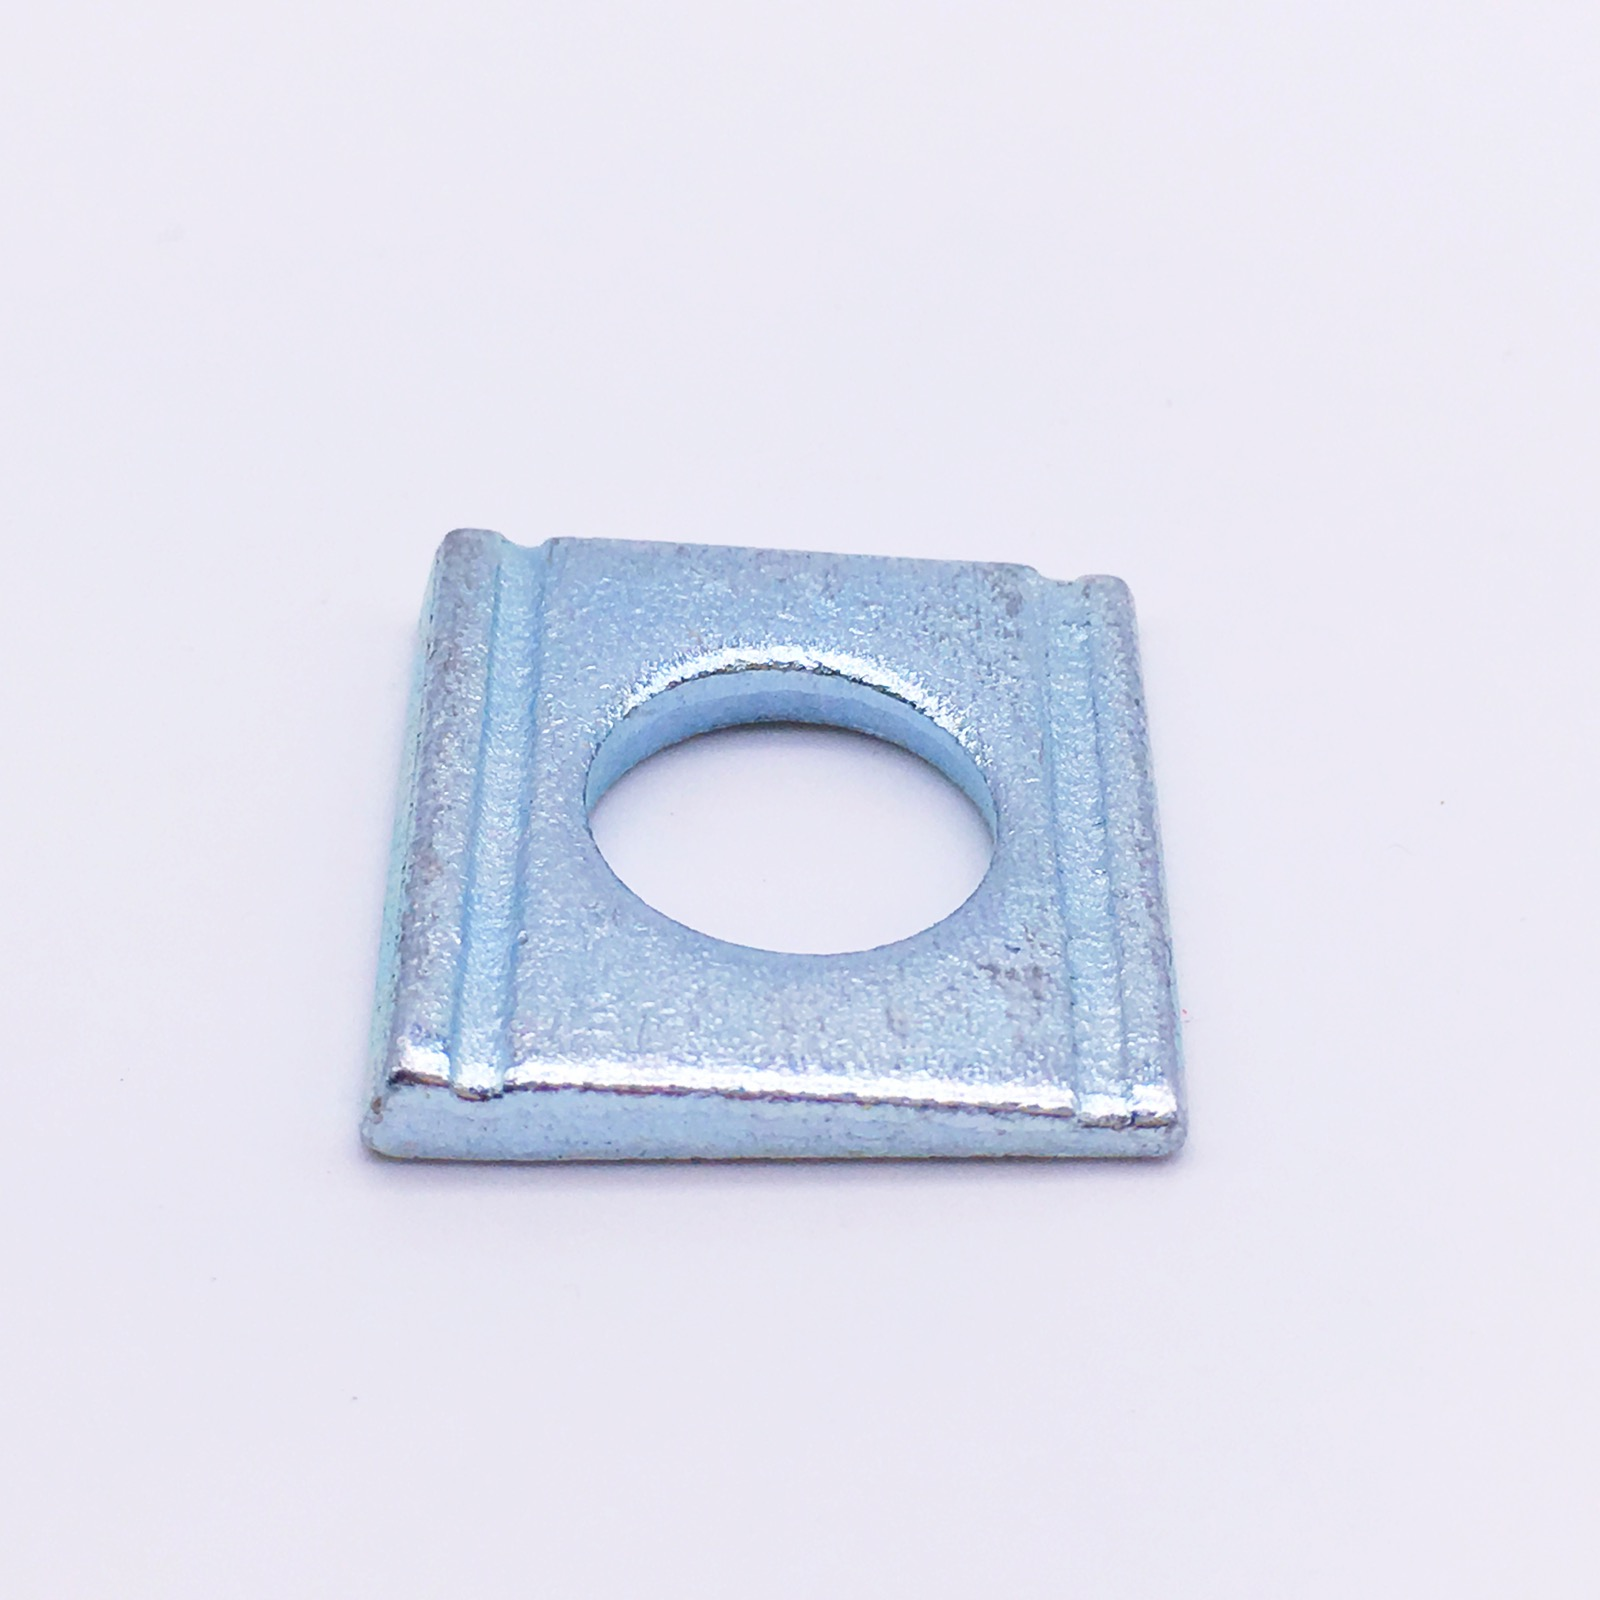 M16 Square Taper Washers DIN434 For Channel Sections <br><br>Aliexpress